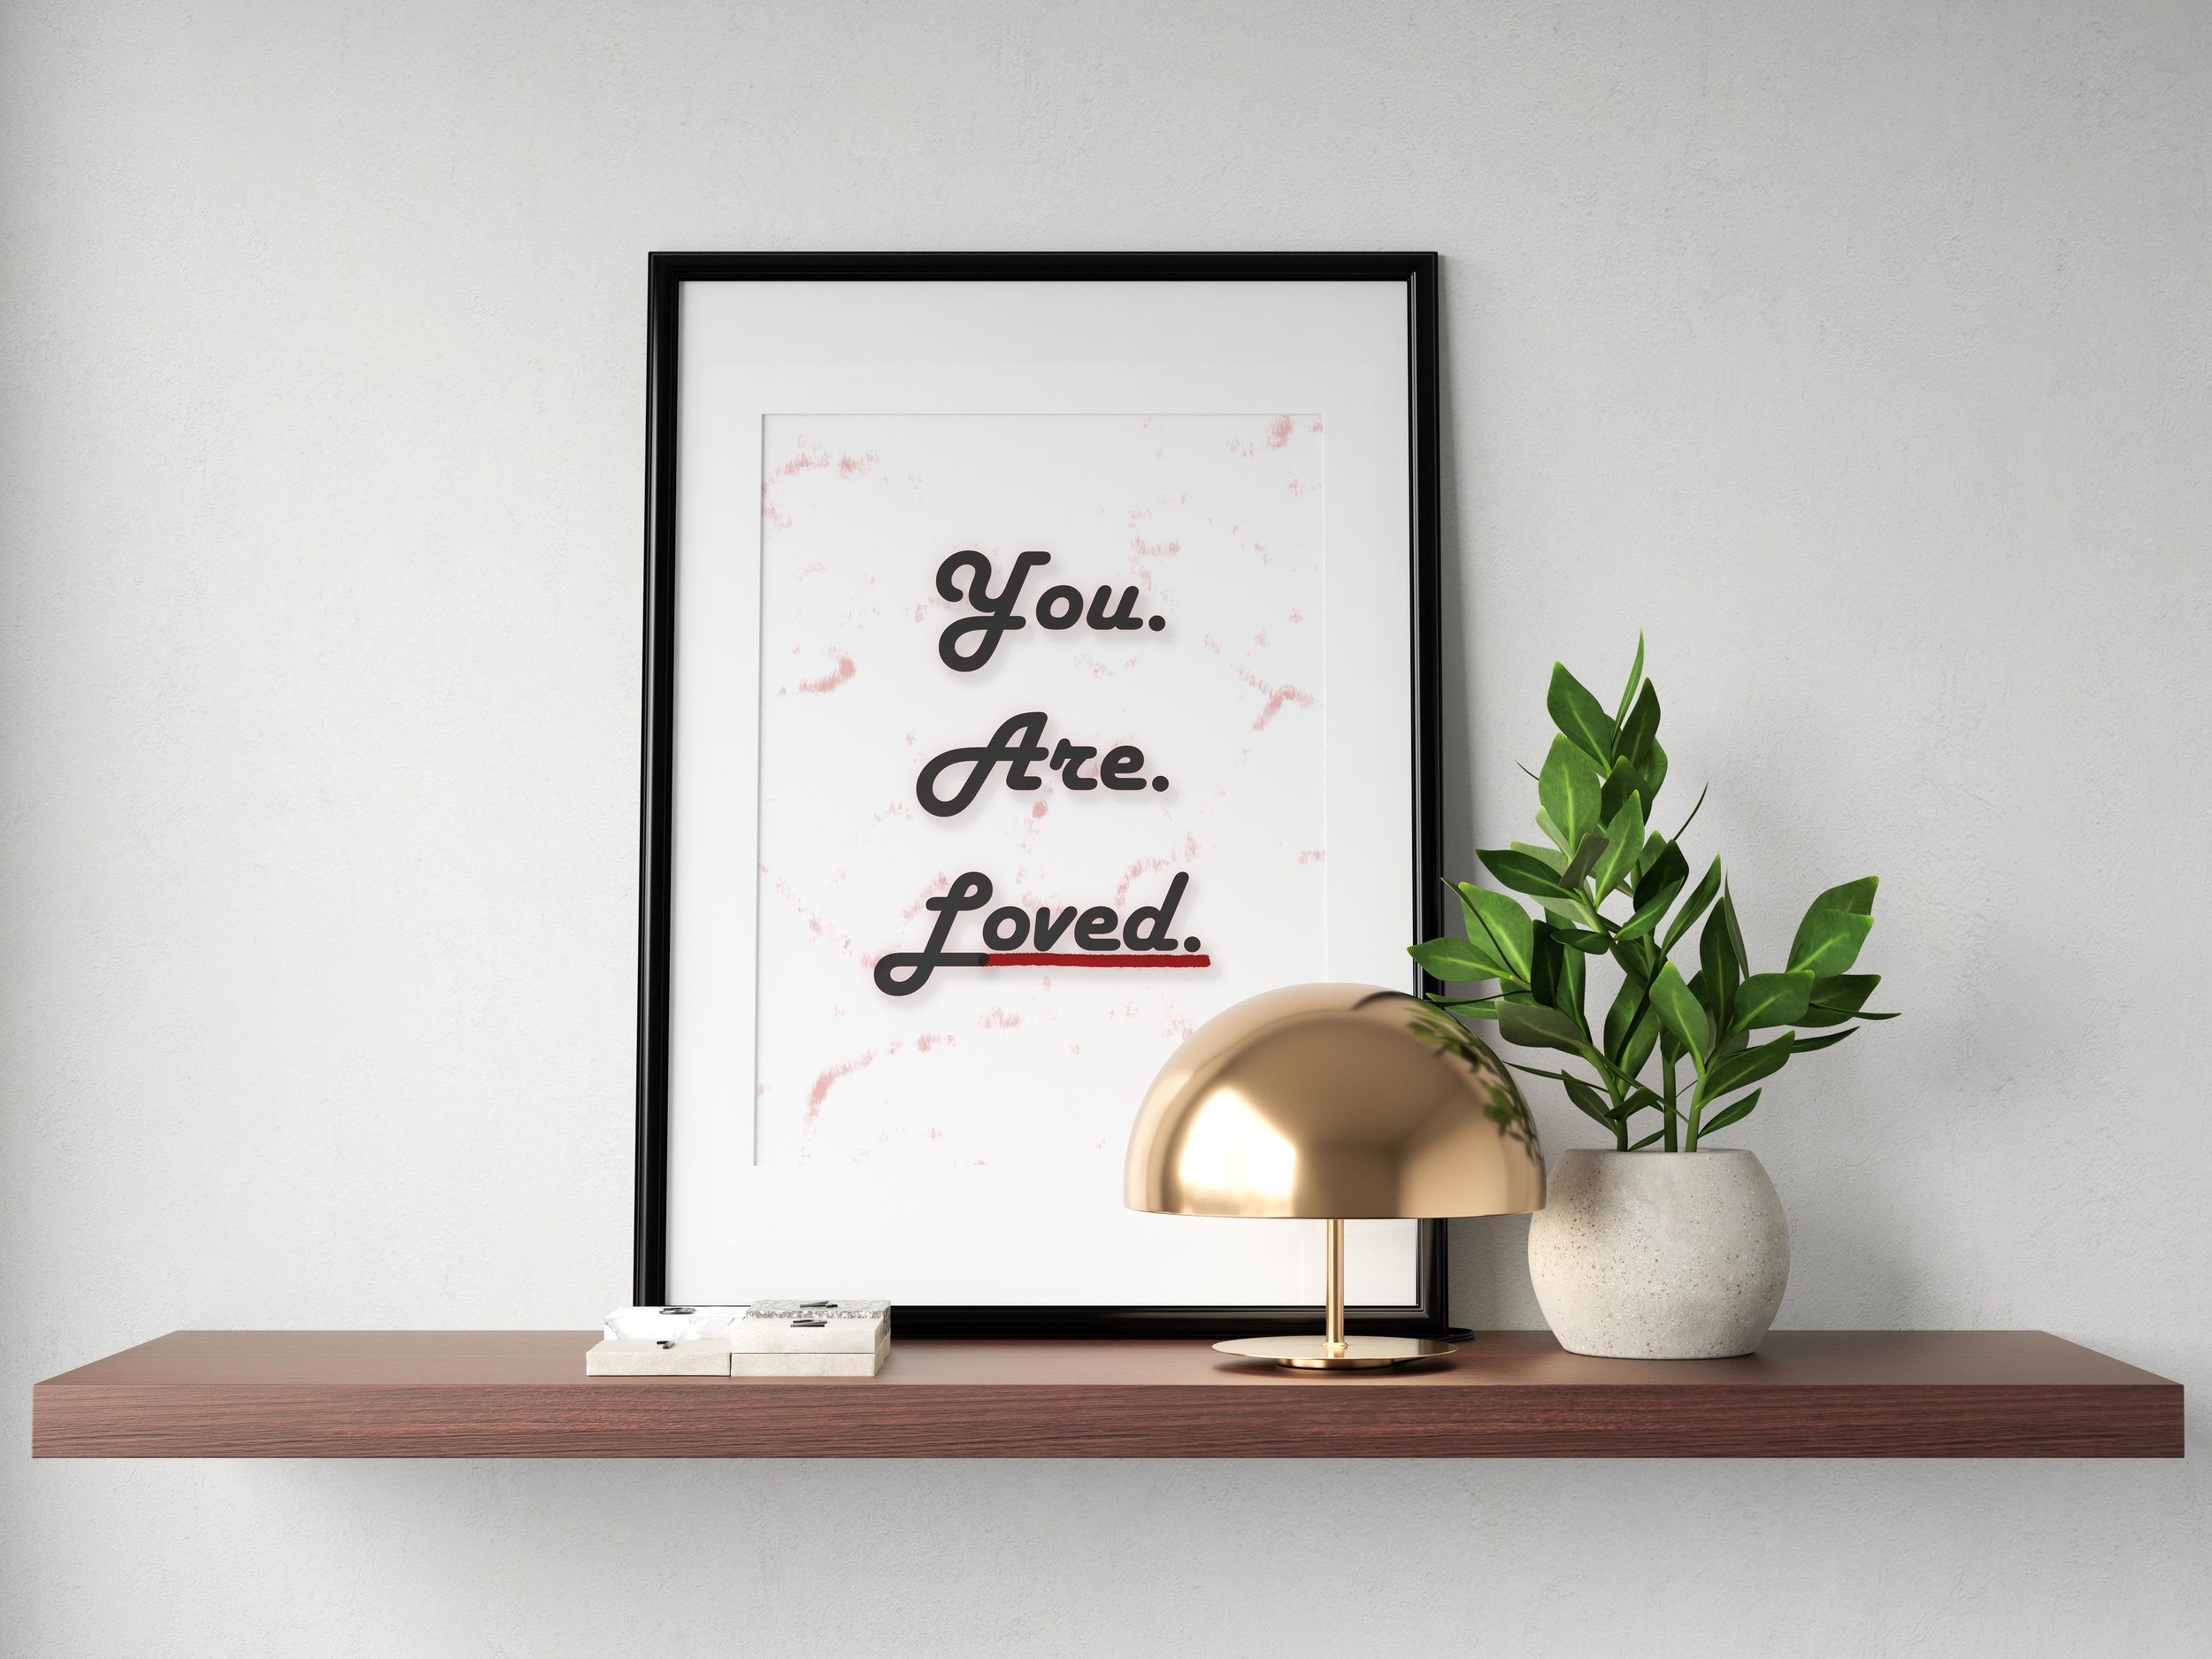 You Are Loved - $12.00